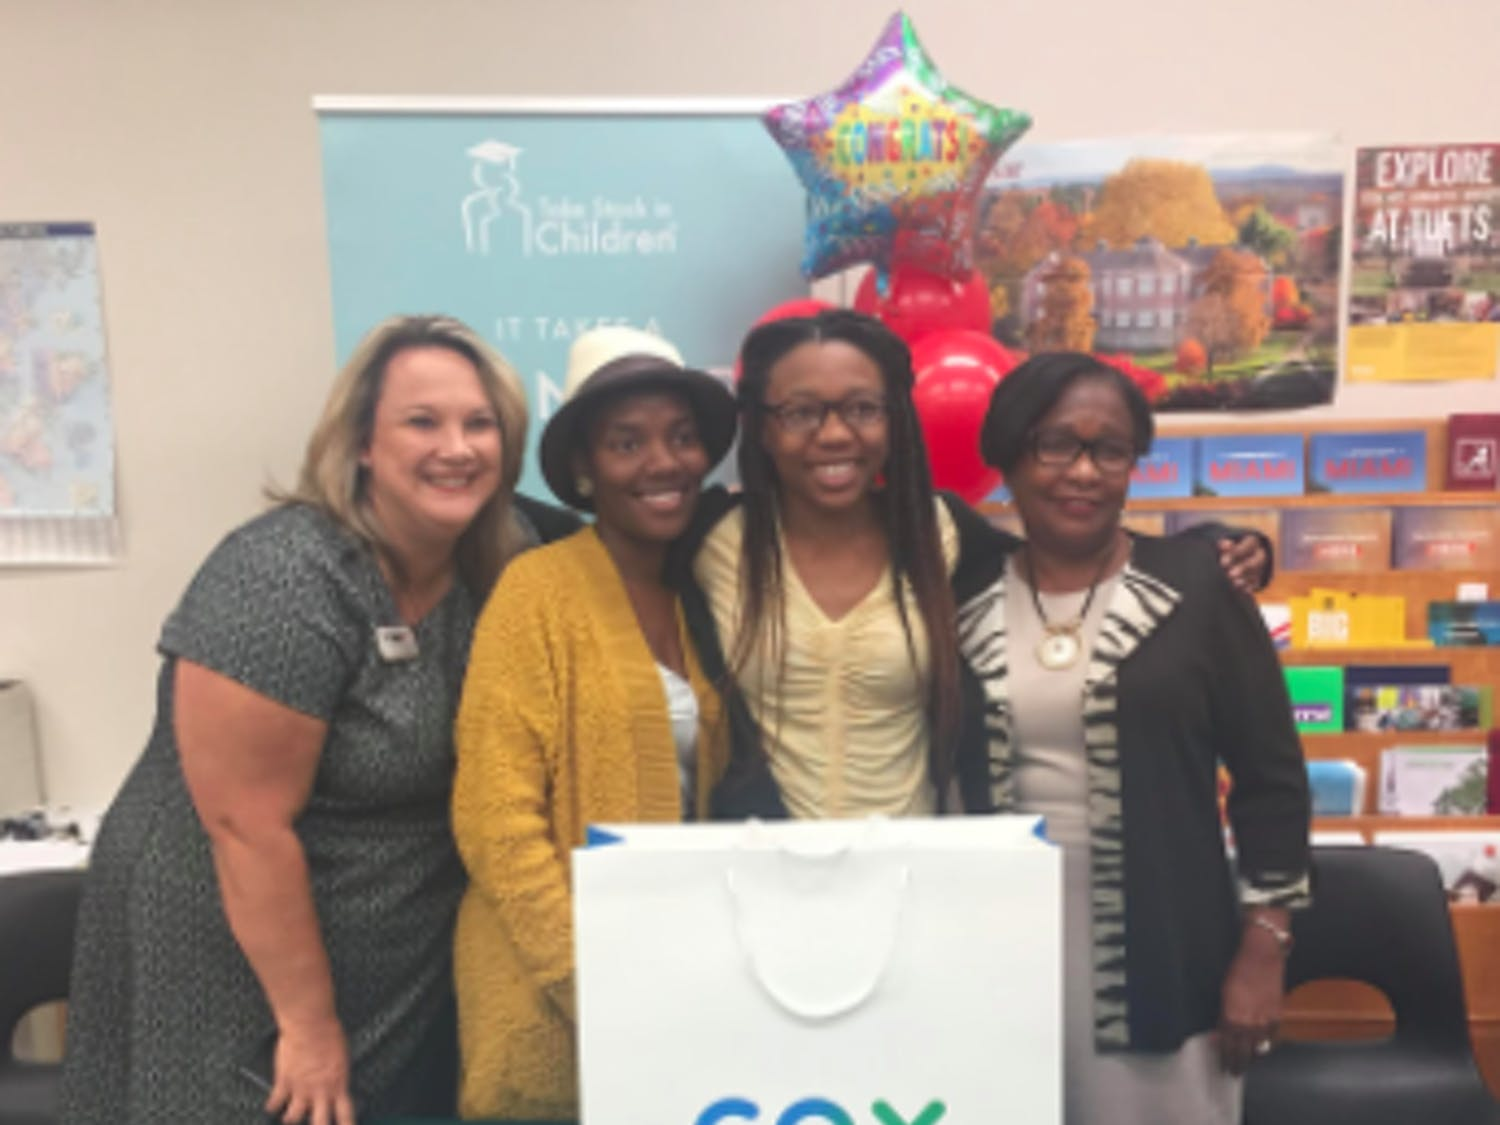 Former Superintendent Karen Clarke, left, Moore's mom, Tedreyonce' Moore and Deputy Superintendent Donna Jones smile on Oct. 28, 2019, the day Moore received her laptop. Clarke and Jones were Moore's mentors. (Courtesy of The Education Foundation of Alachua County)